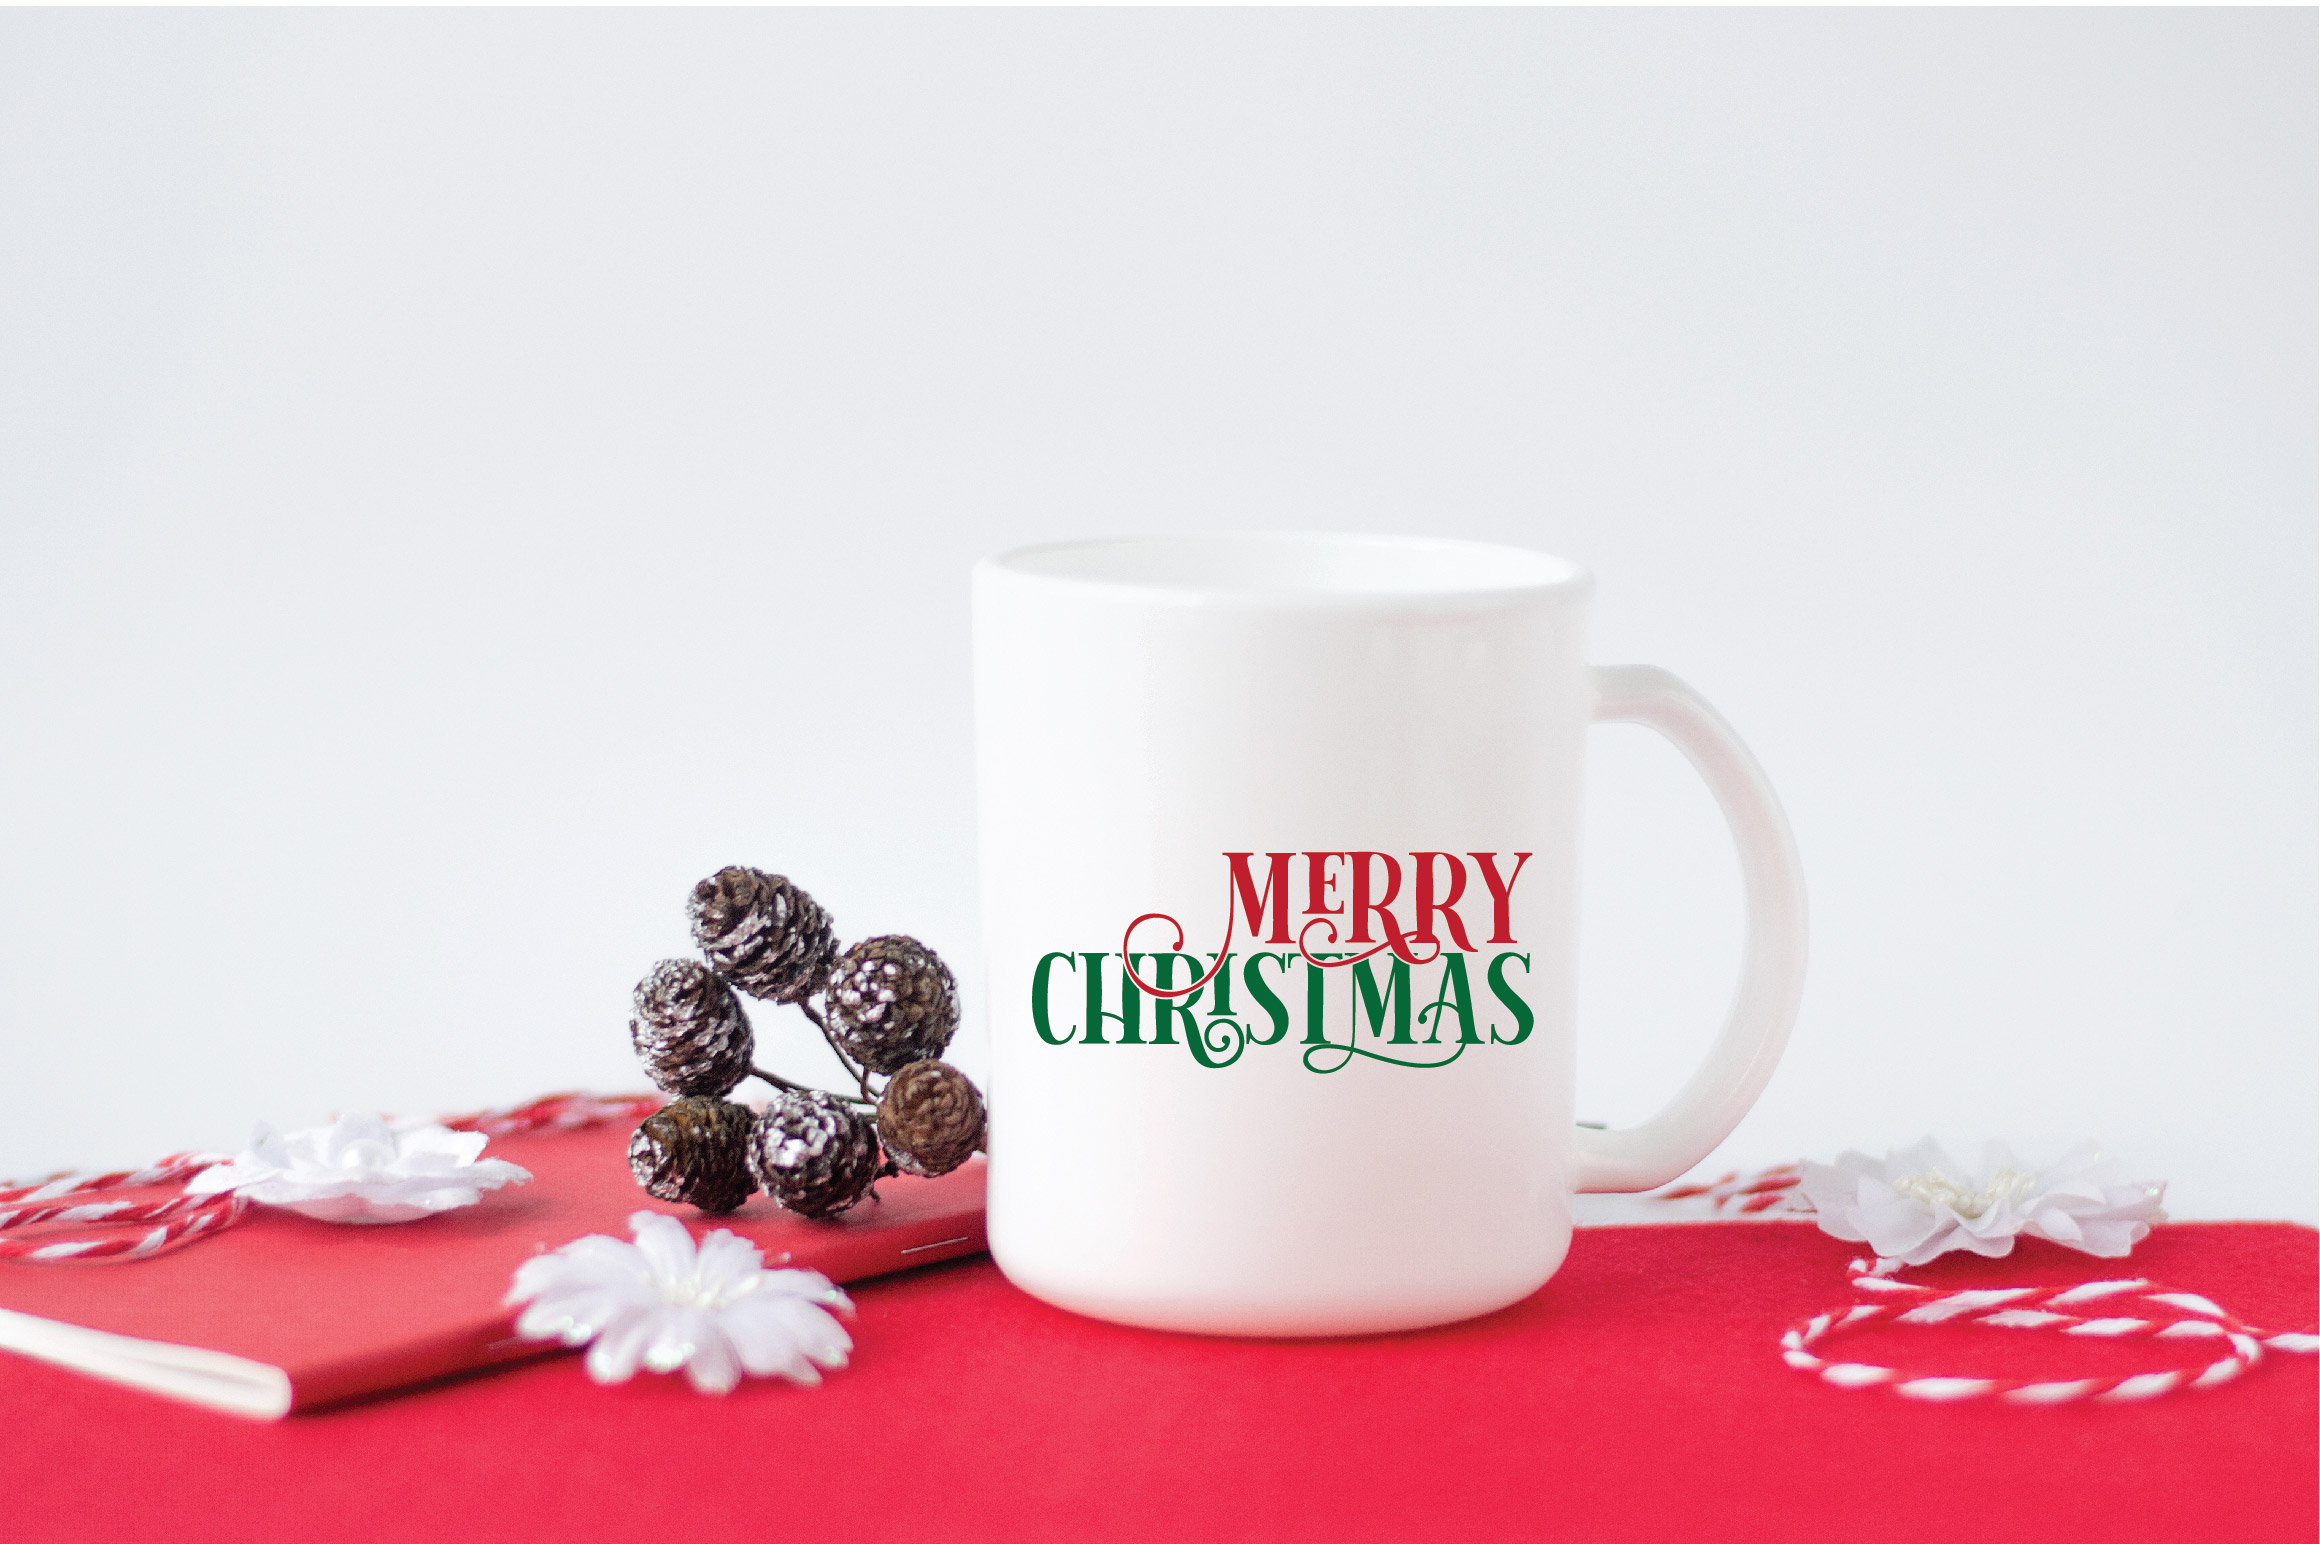 Merry Christmas SVG Cut File example image 5